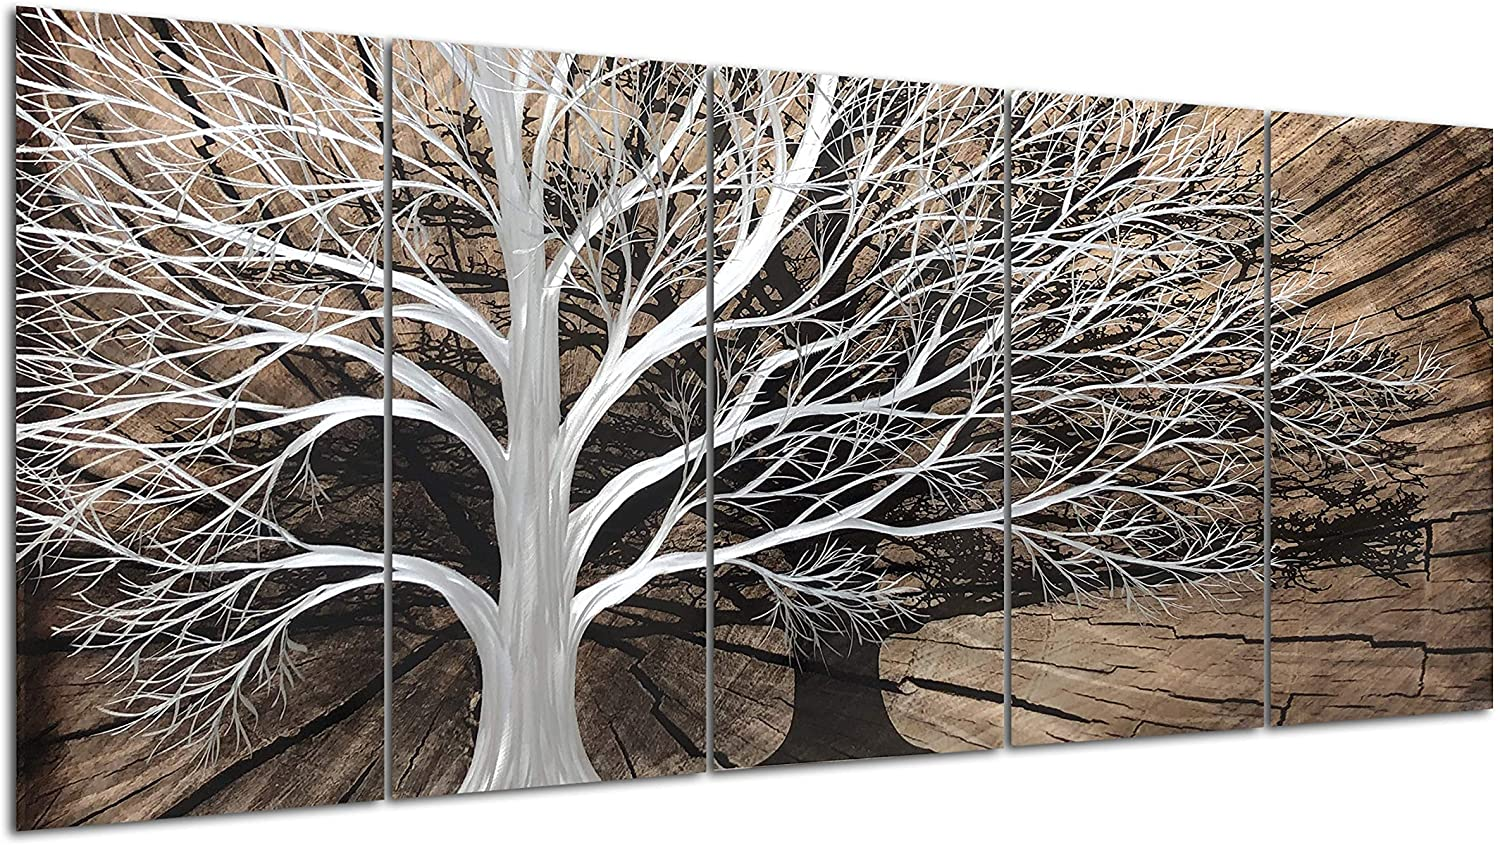 Amazon Com Yihui Arts 3d Silver Tree Metal Wall Art Hand Grind On Aluminum Brown Rustic Pictures In 5 Panel Modern Artwork For Living Room Bedroom Decoration 24wx64l Everything Else